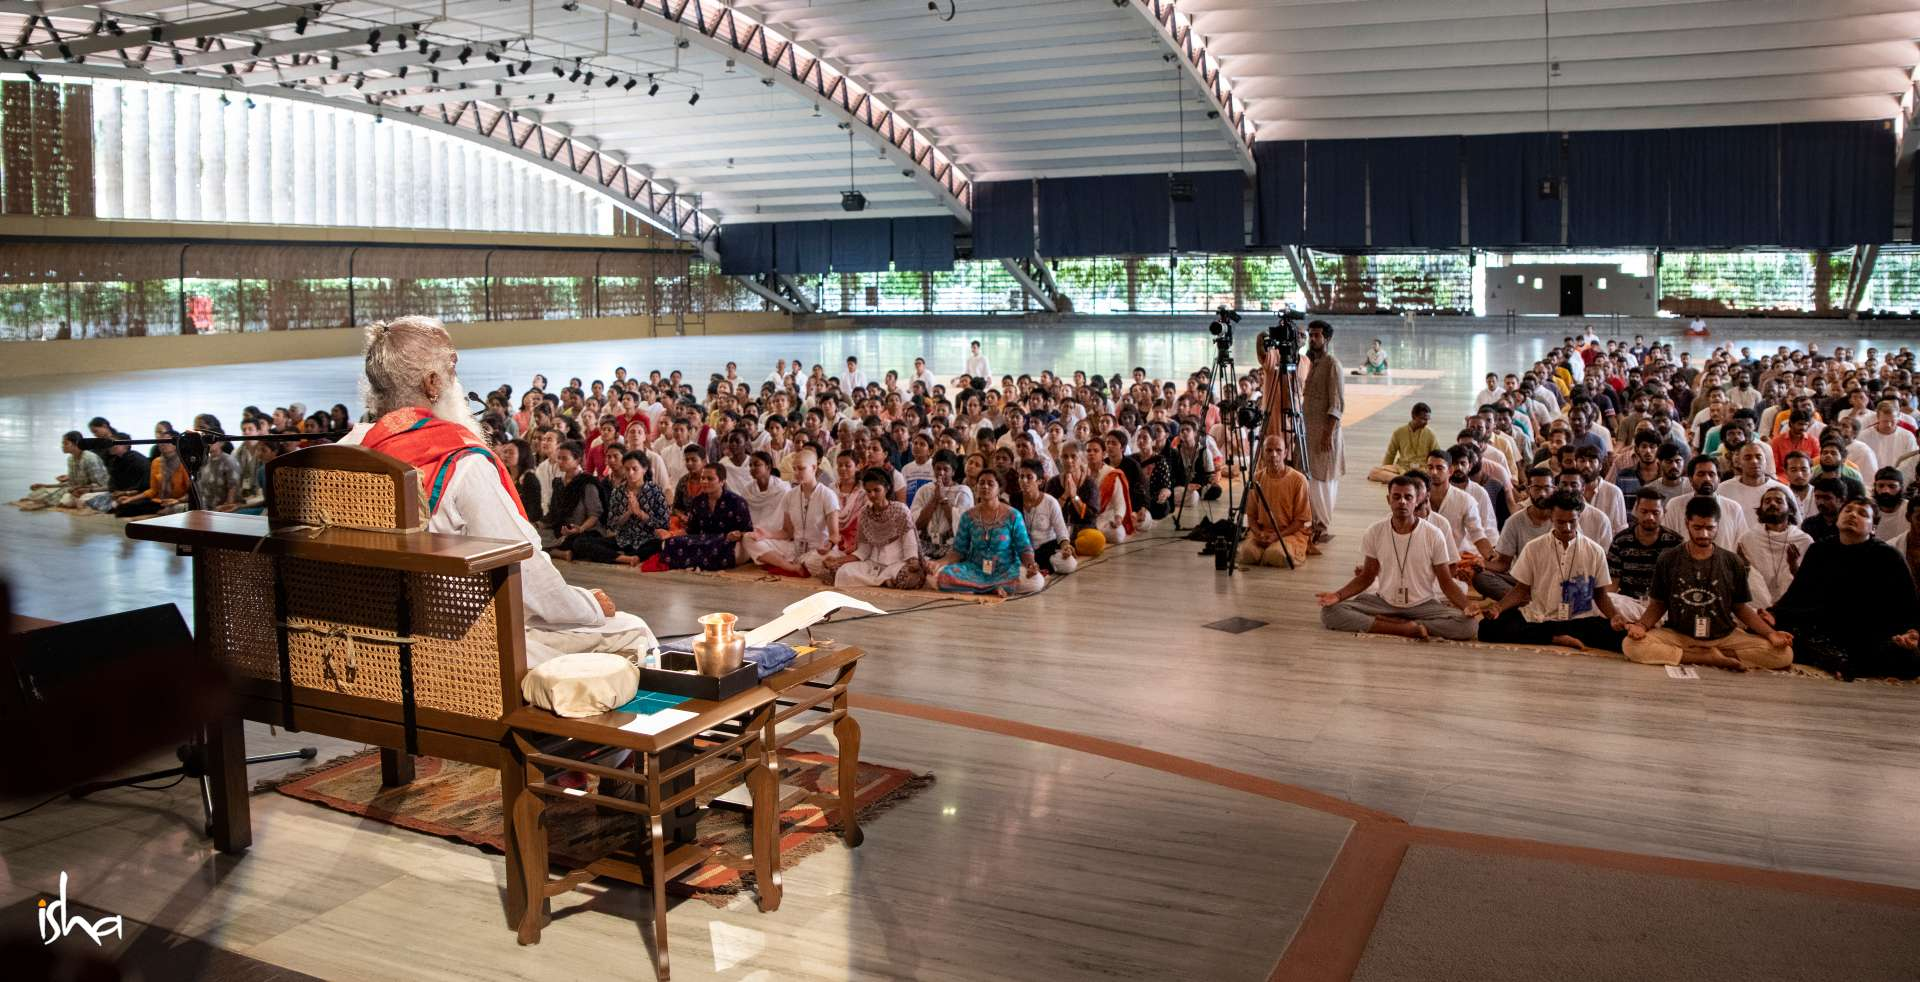 isha-blog-article-life-in-sadhanpada-consecrated-space-the-ultimate-frontier-soaked-in-grace